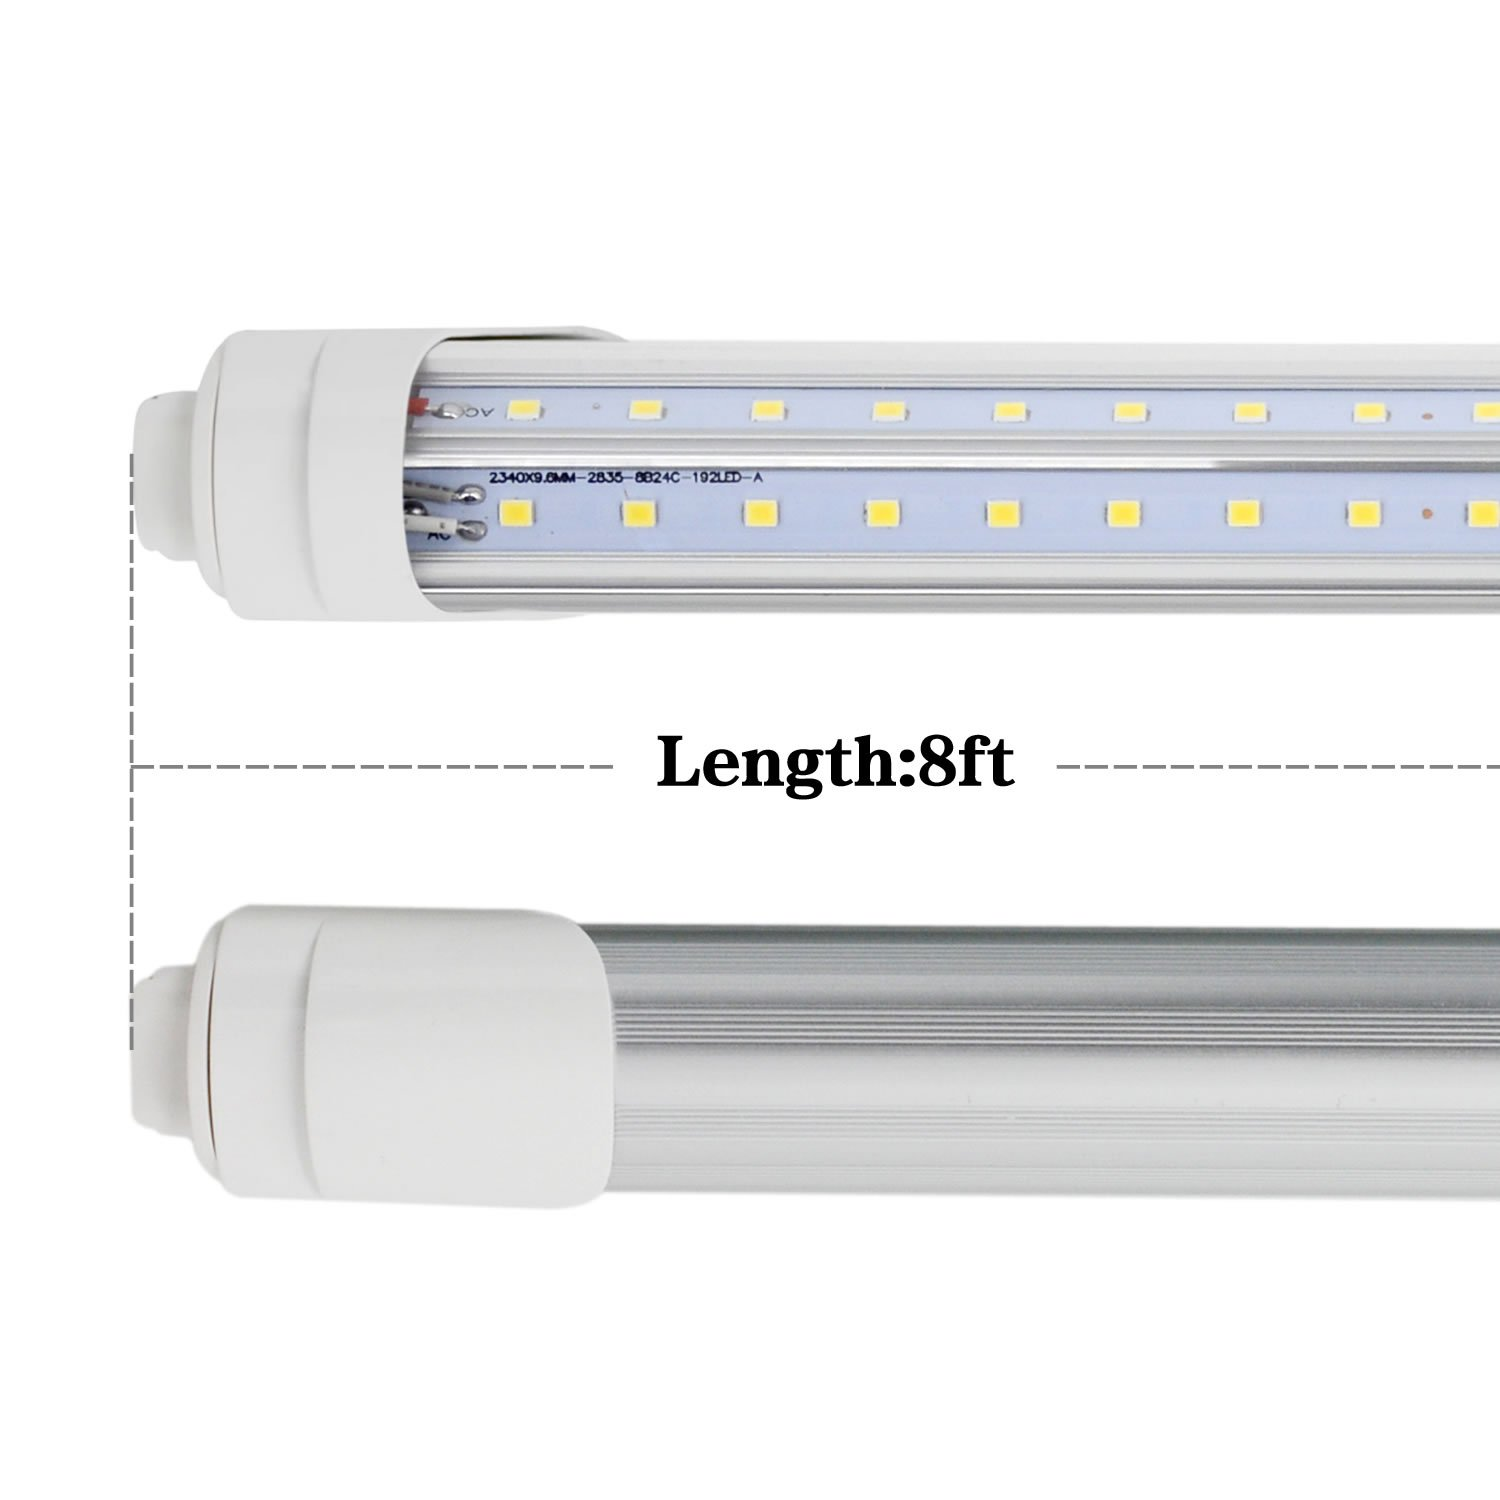 R17d 8 Foot Led Bulbs T8 T10 F96t12 8ft Cw Ho Tube Light Wiring Diagram Dual Fixture 96 V Shaped Fluorescent Replacement 72w 7200 Lumens 6000k Double Ended Power